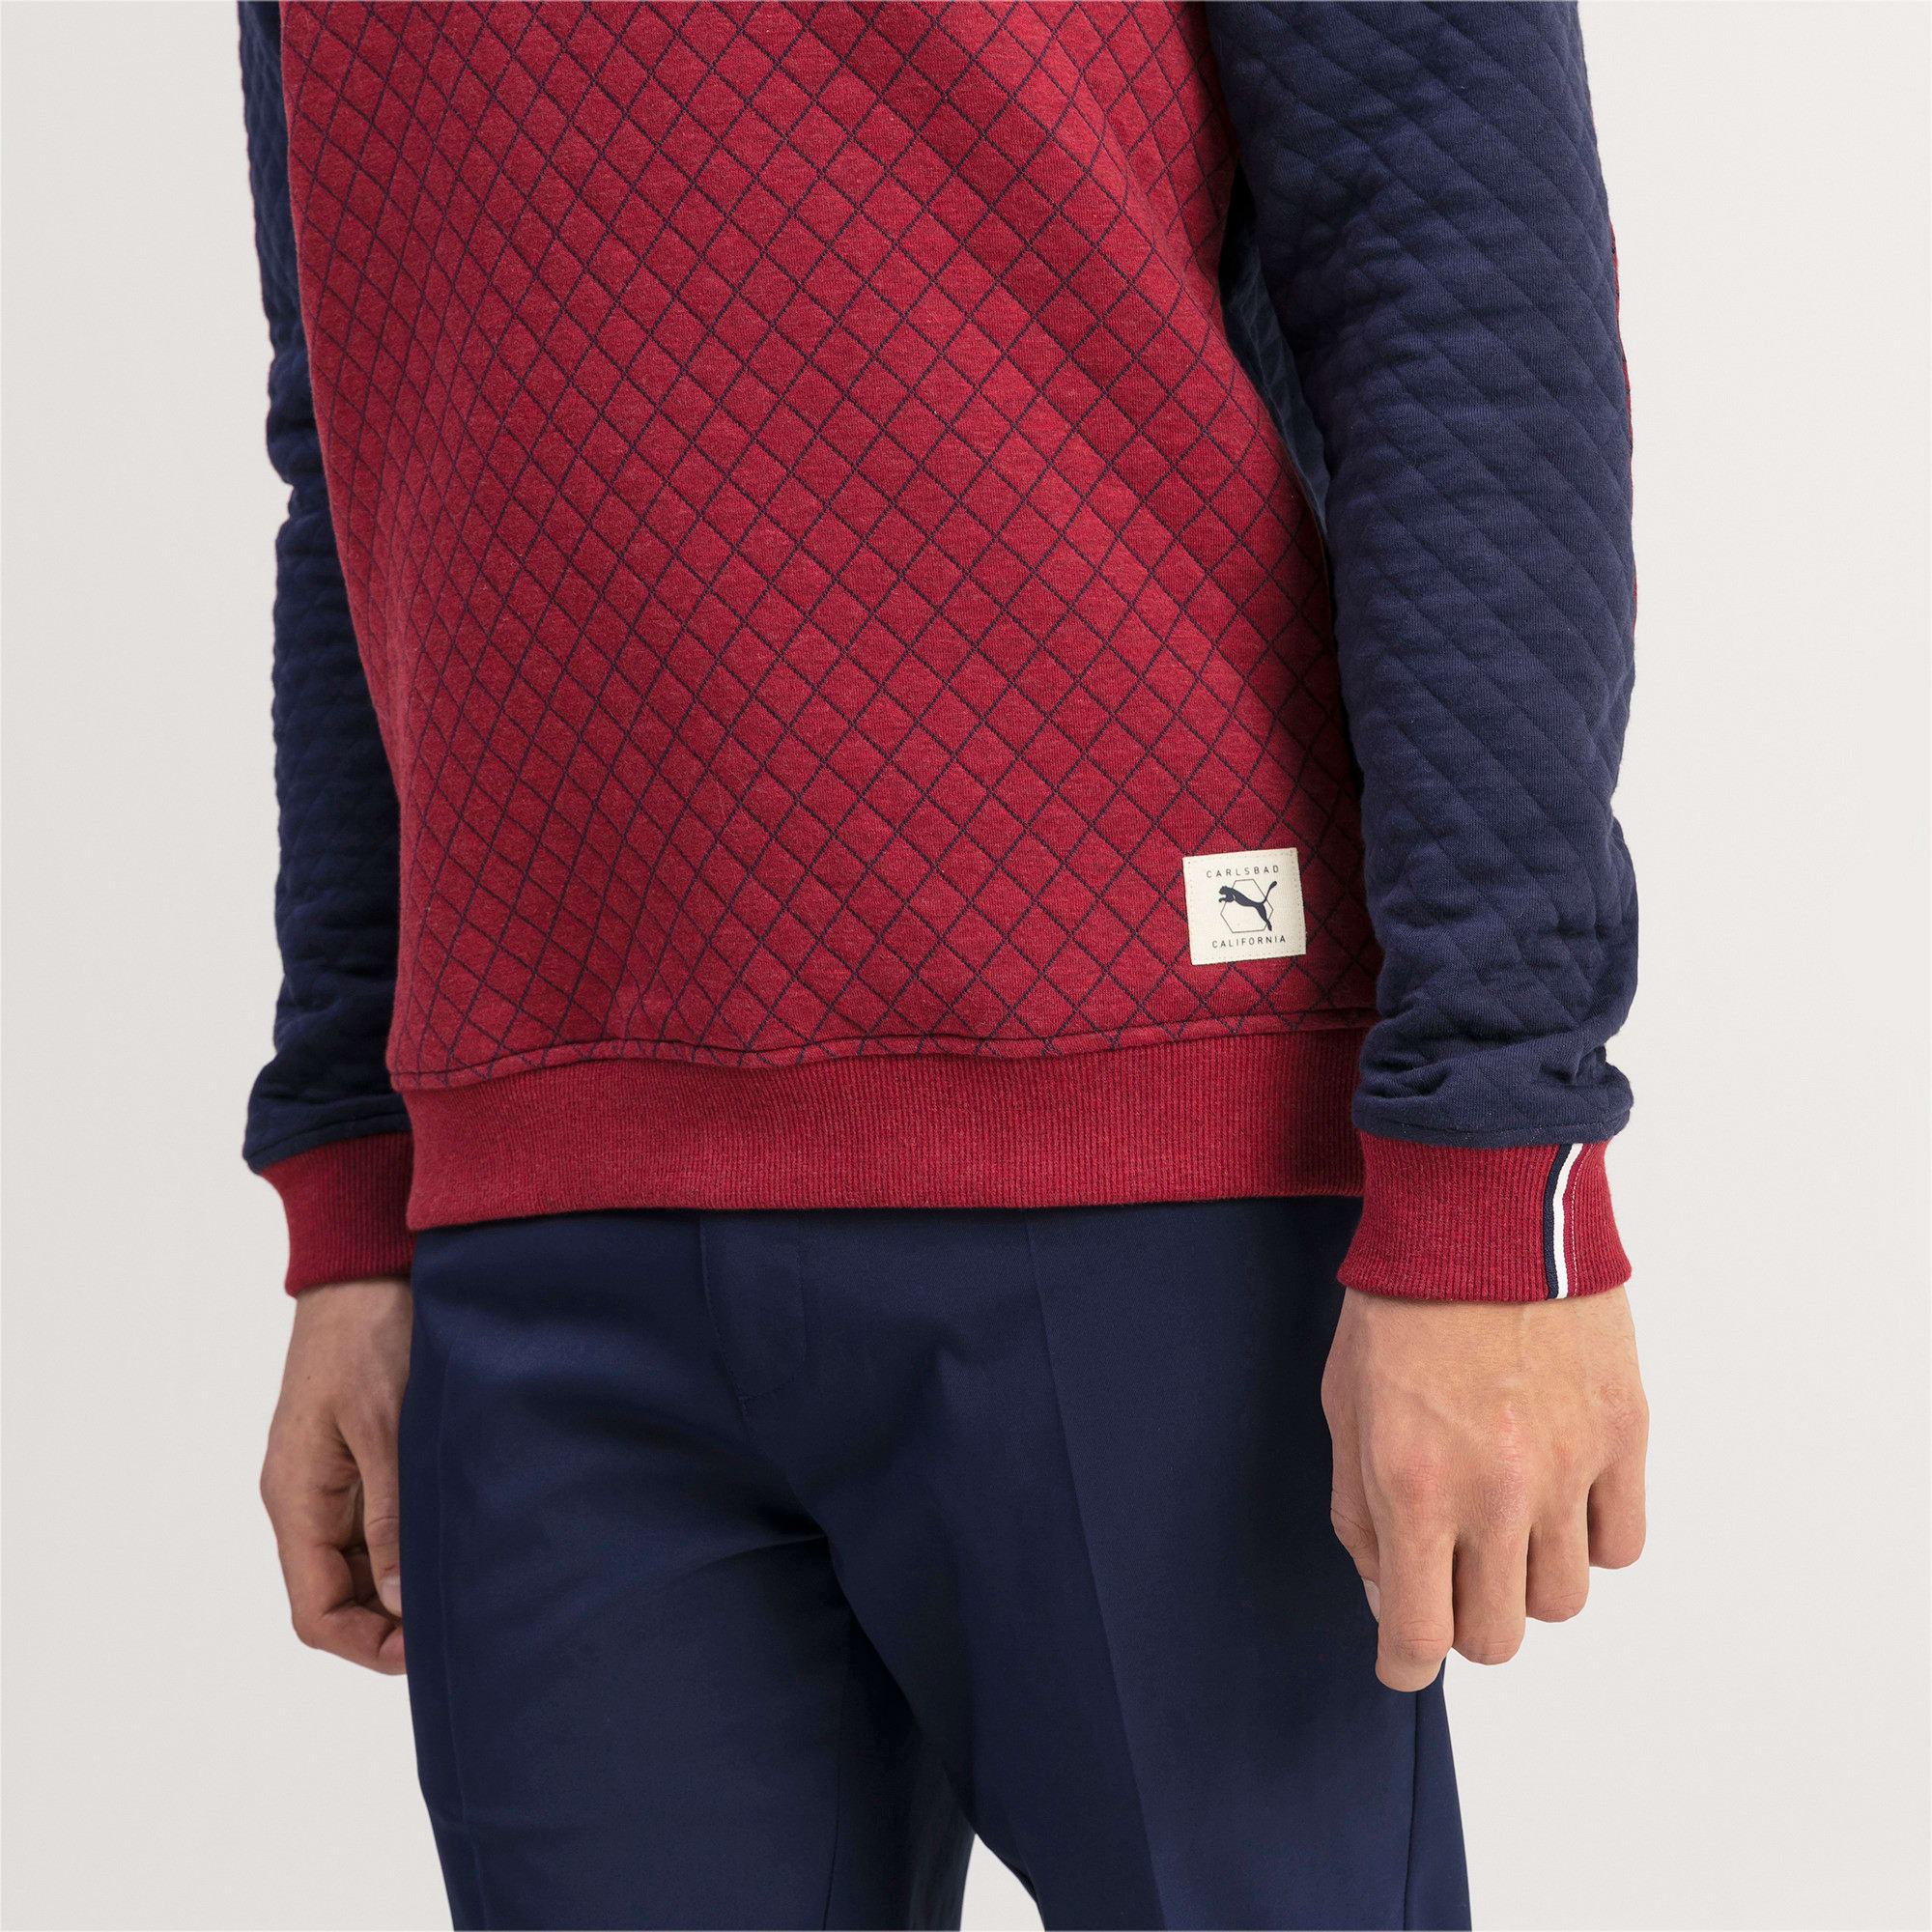 Thumbnail 4 of Gestepptes Herren Golf Sweatshirt, Rhubarb Heather, medium